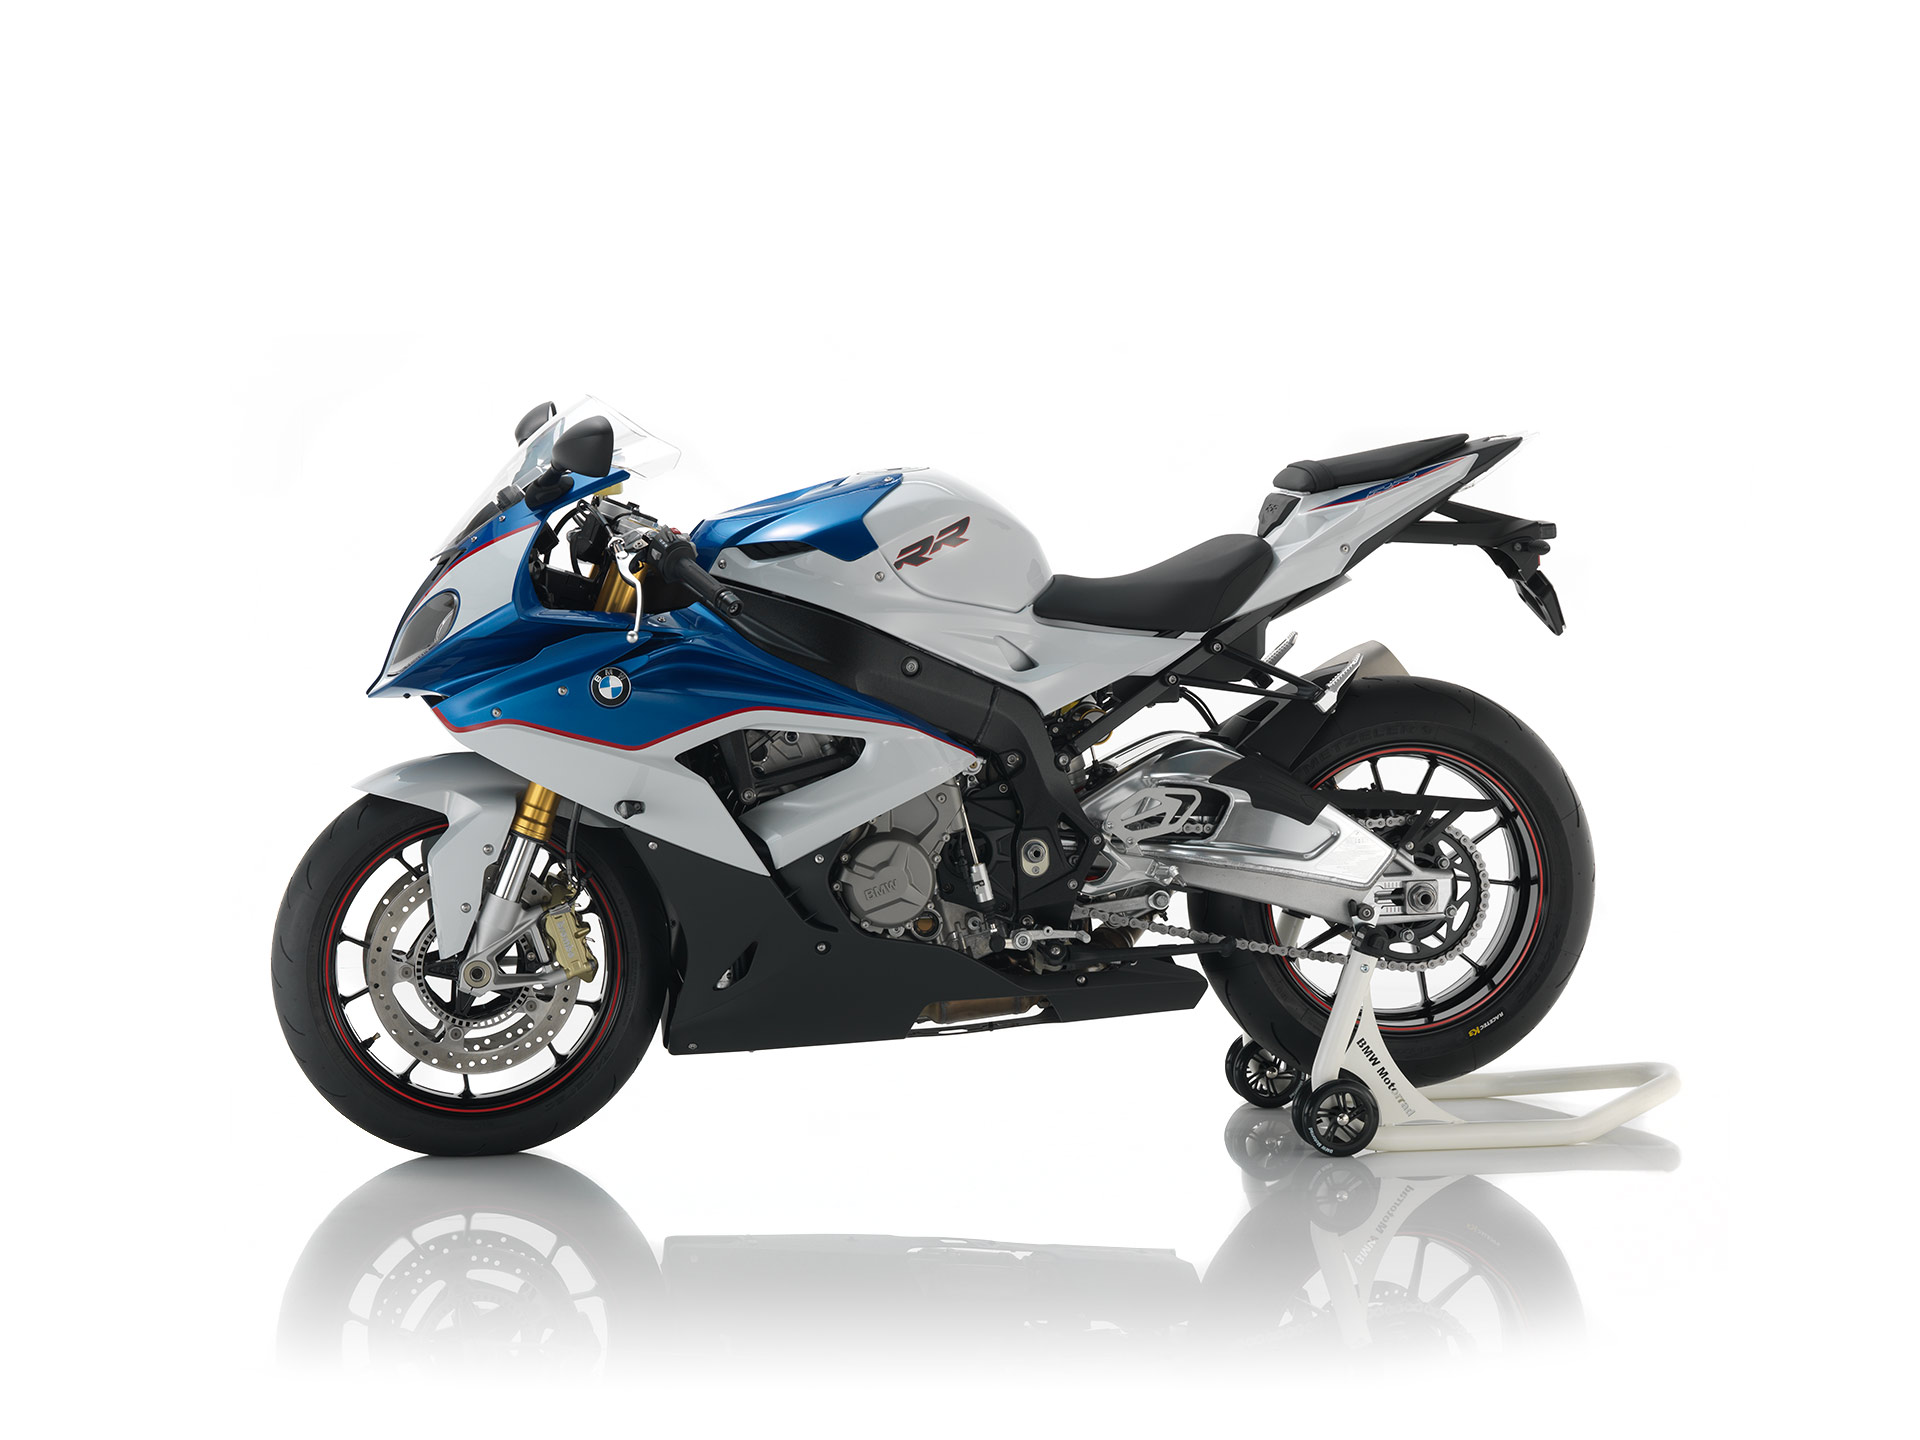 2015 Motorcycles More Power More Adventure More Scramble Part 1 More Power I D Rather Be